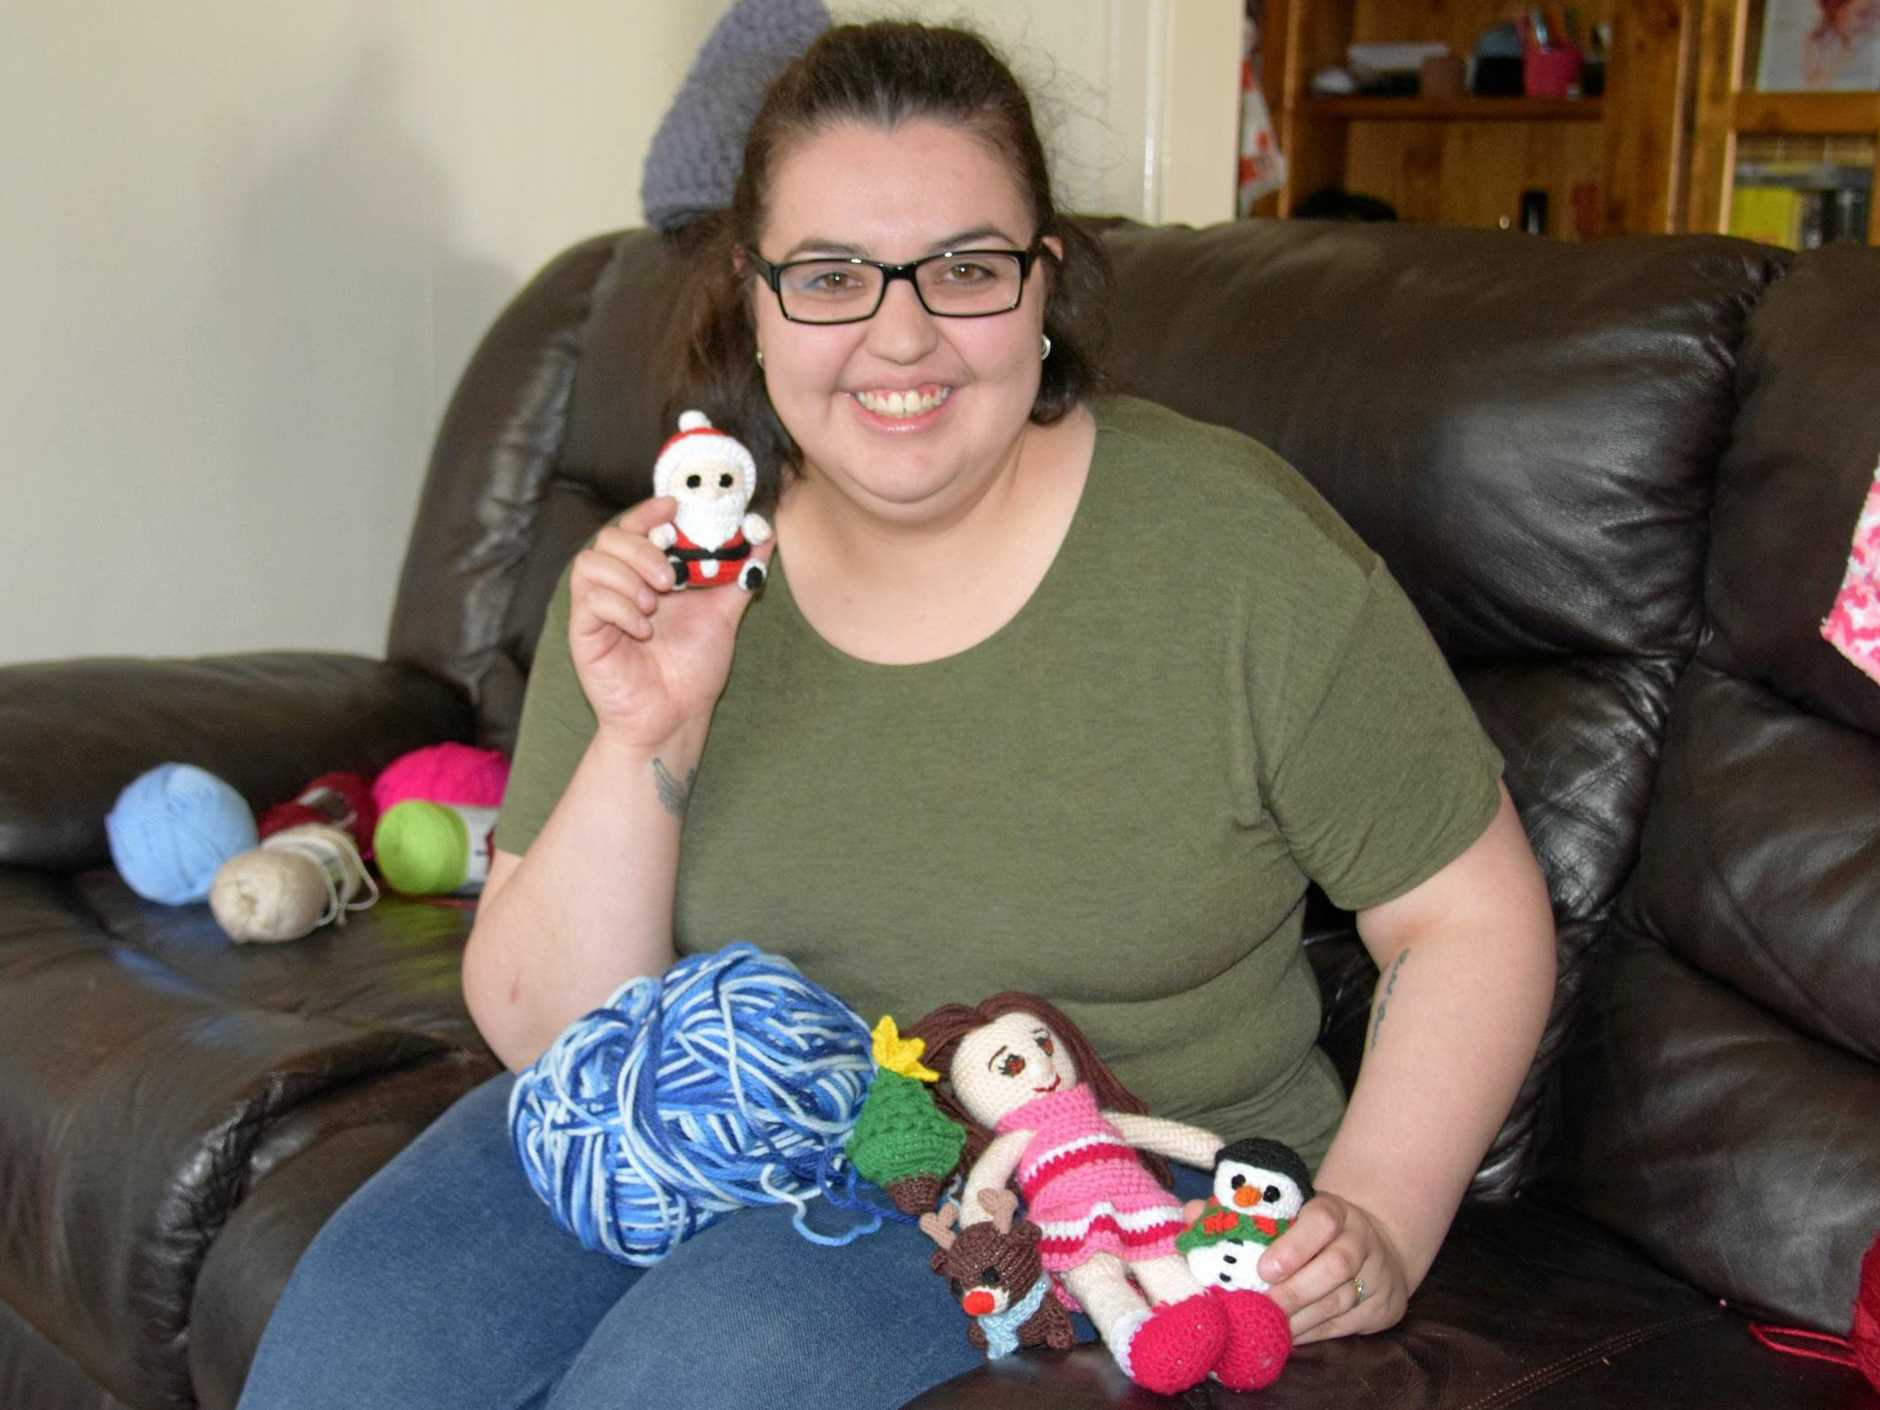 CRAFTY: Jen Rendalls is crocheting tiny characters for Christmas.